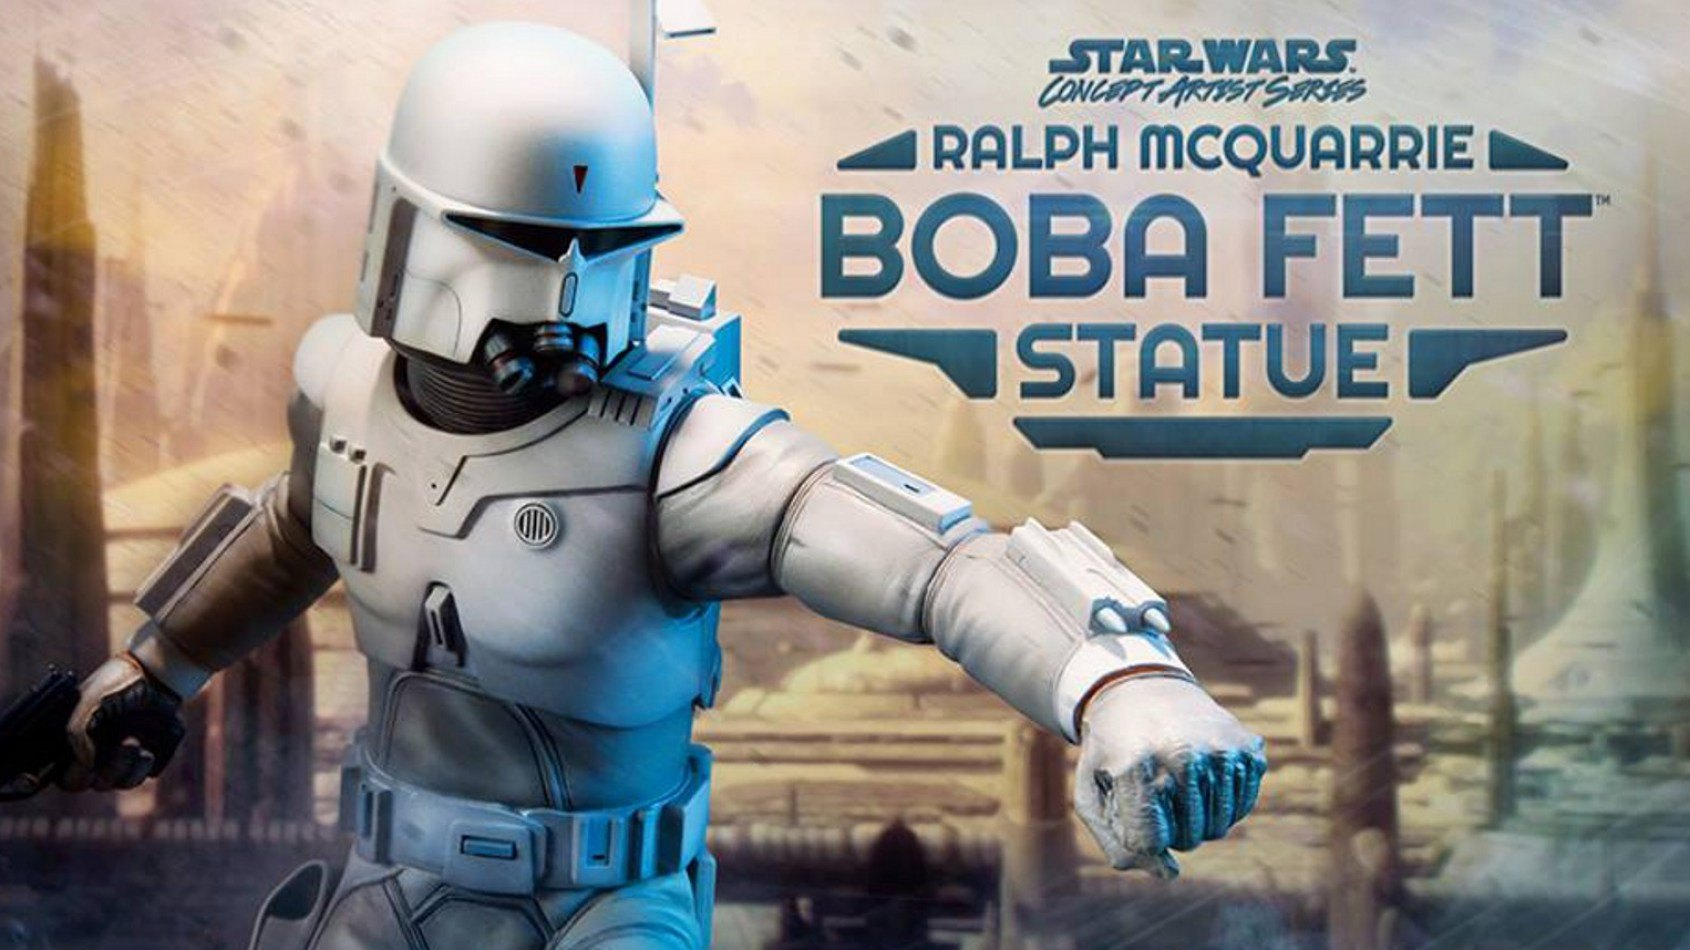 [Sideshow Collectibles] Ralph McQuarrie Boba Fett Statue PREVIEW